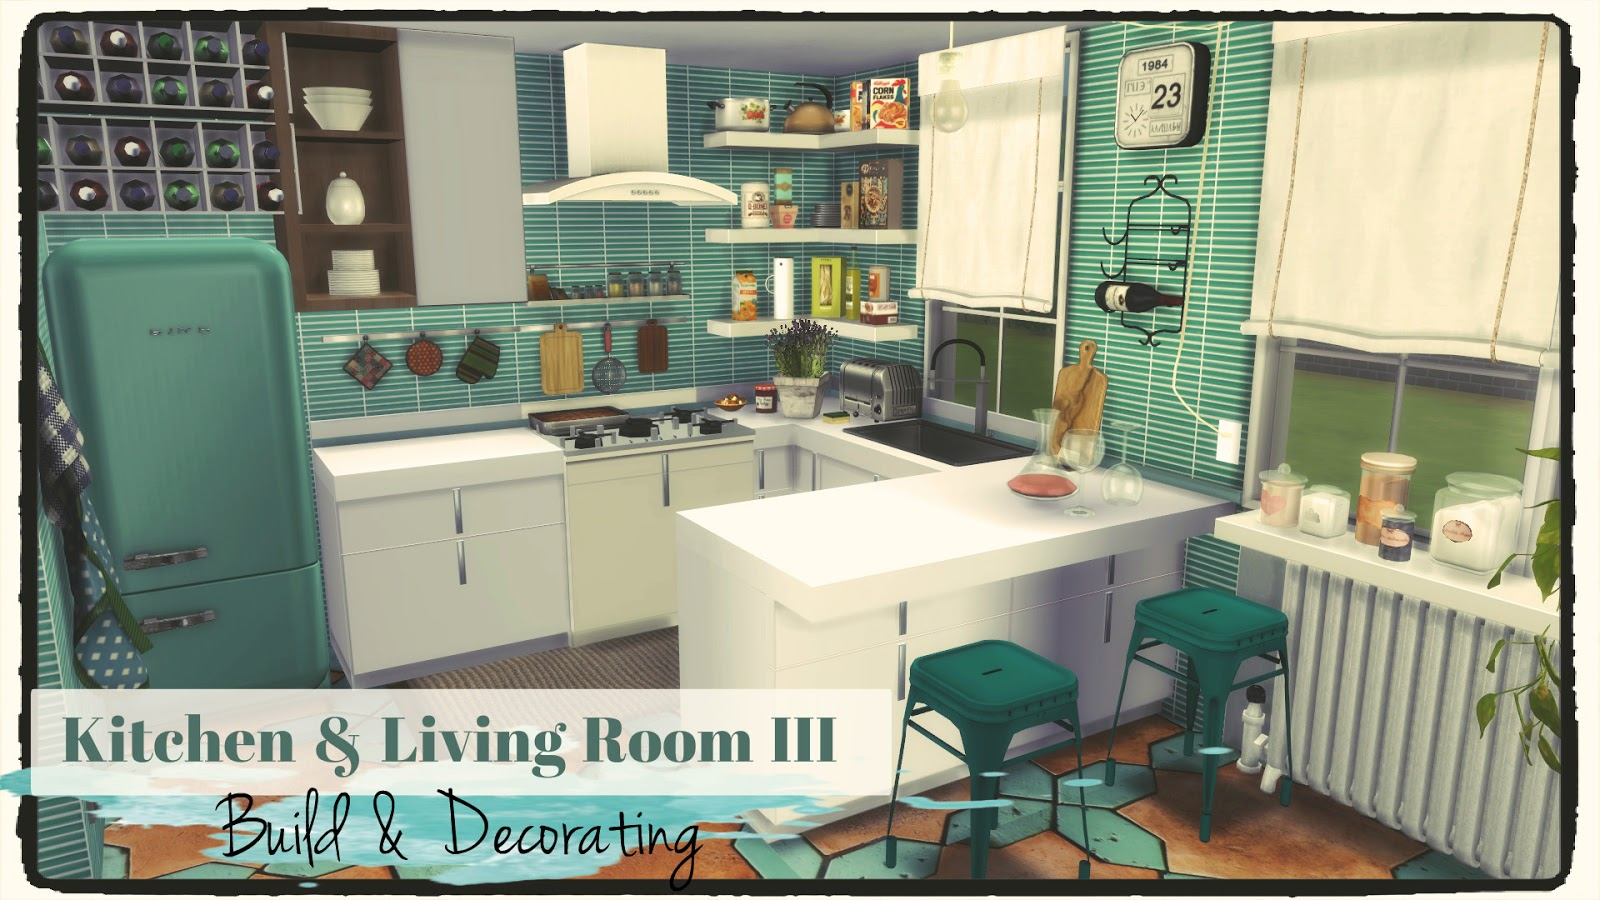 Sims 4  Kitchen  Living Room III Build  Decoration